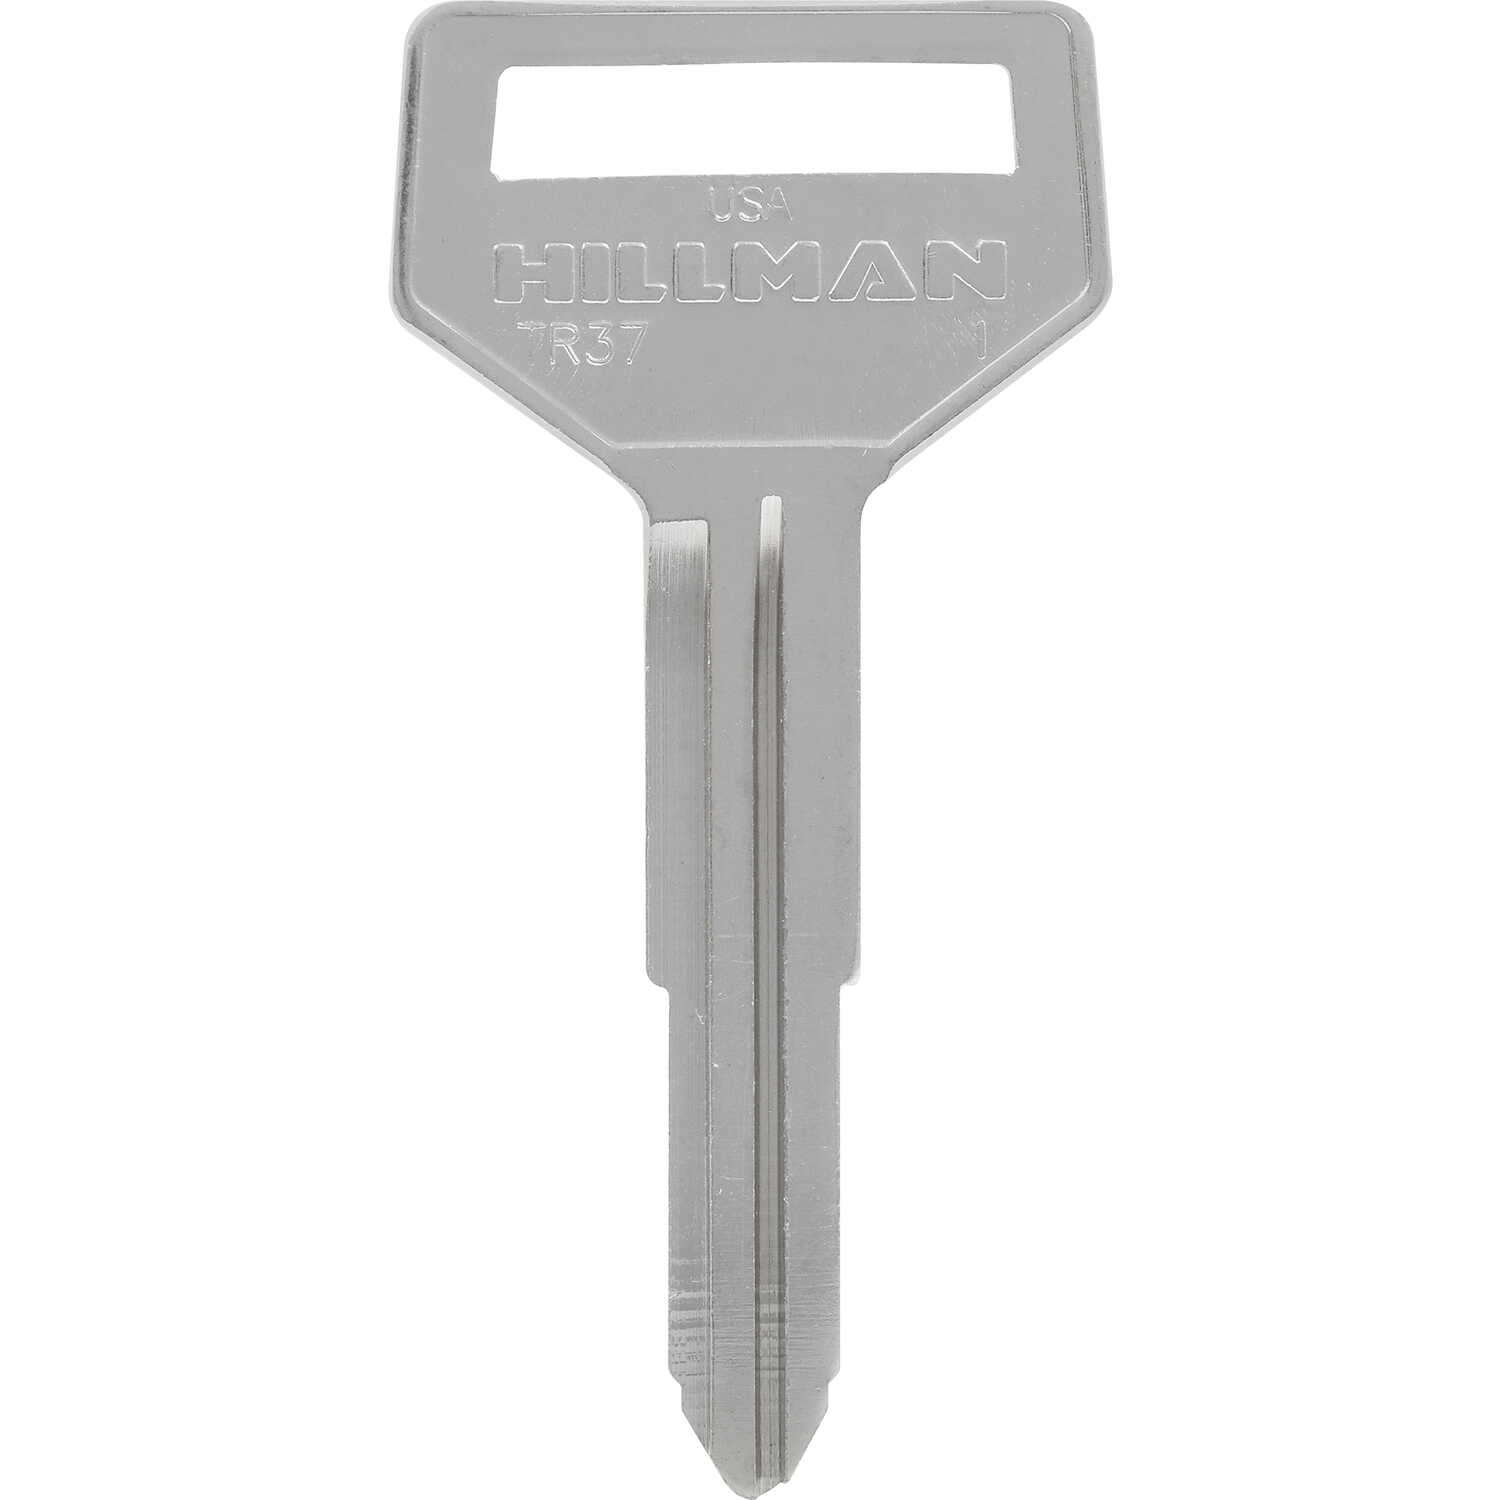 HILLMAN  Automotive  Universal Key Blank  Double sided For Toyota